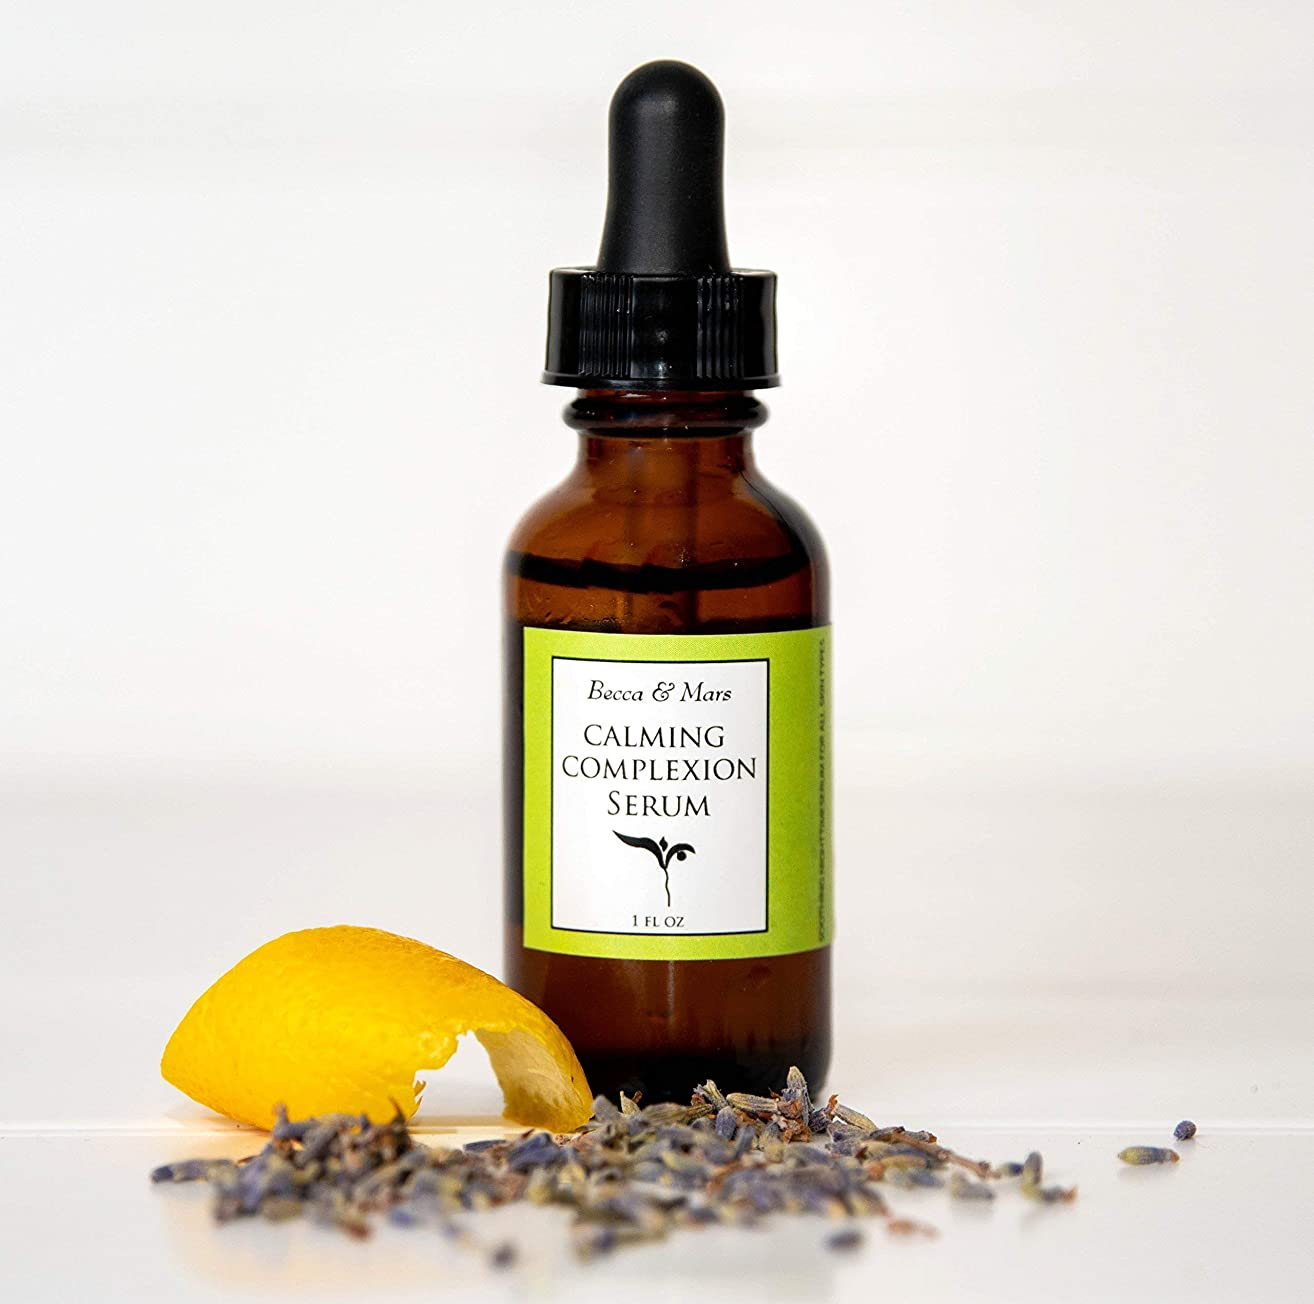 Calming Complexion Serum - Facial Serum, Lavender and Lemon Essential Oil